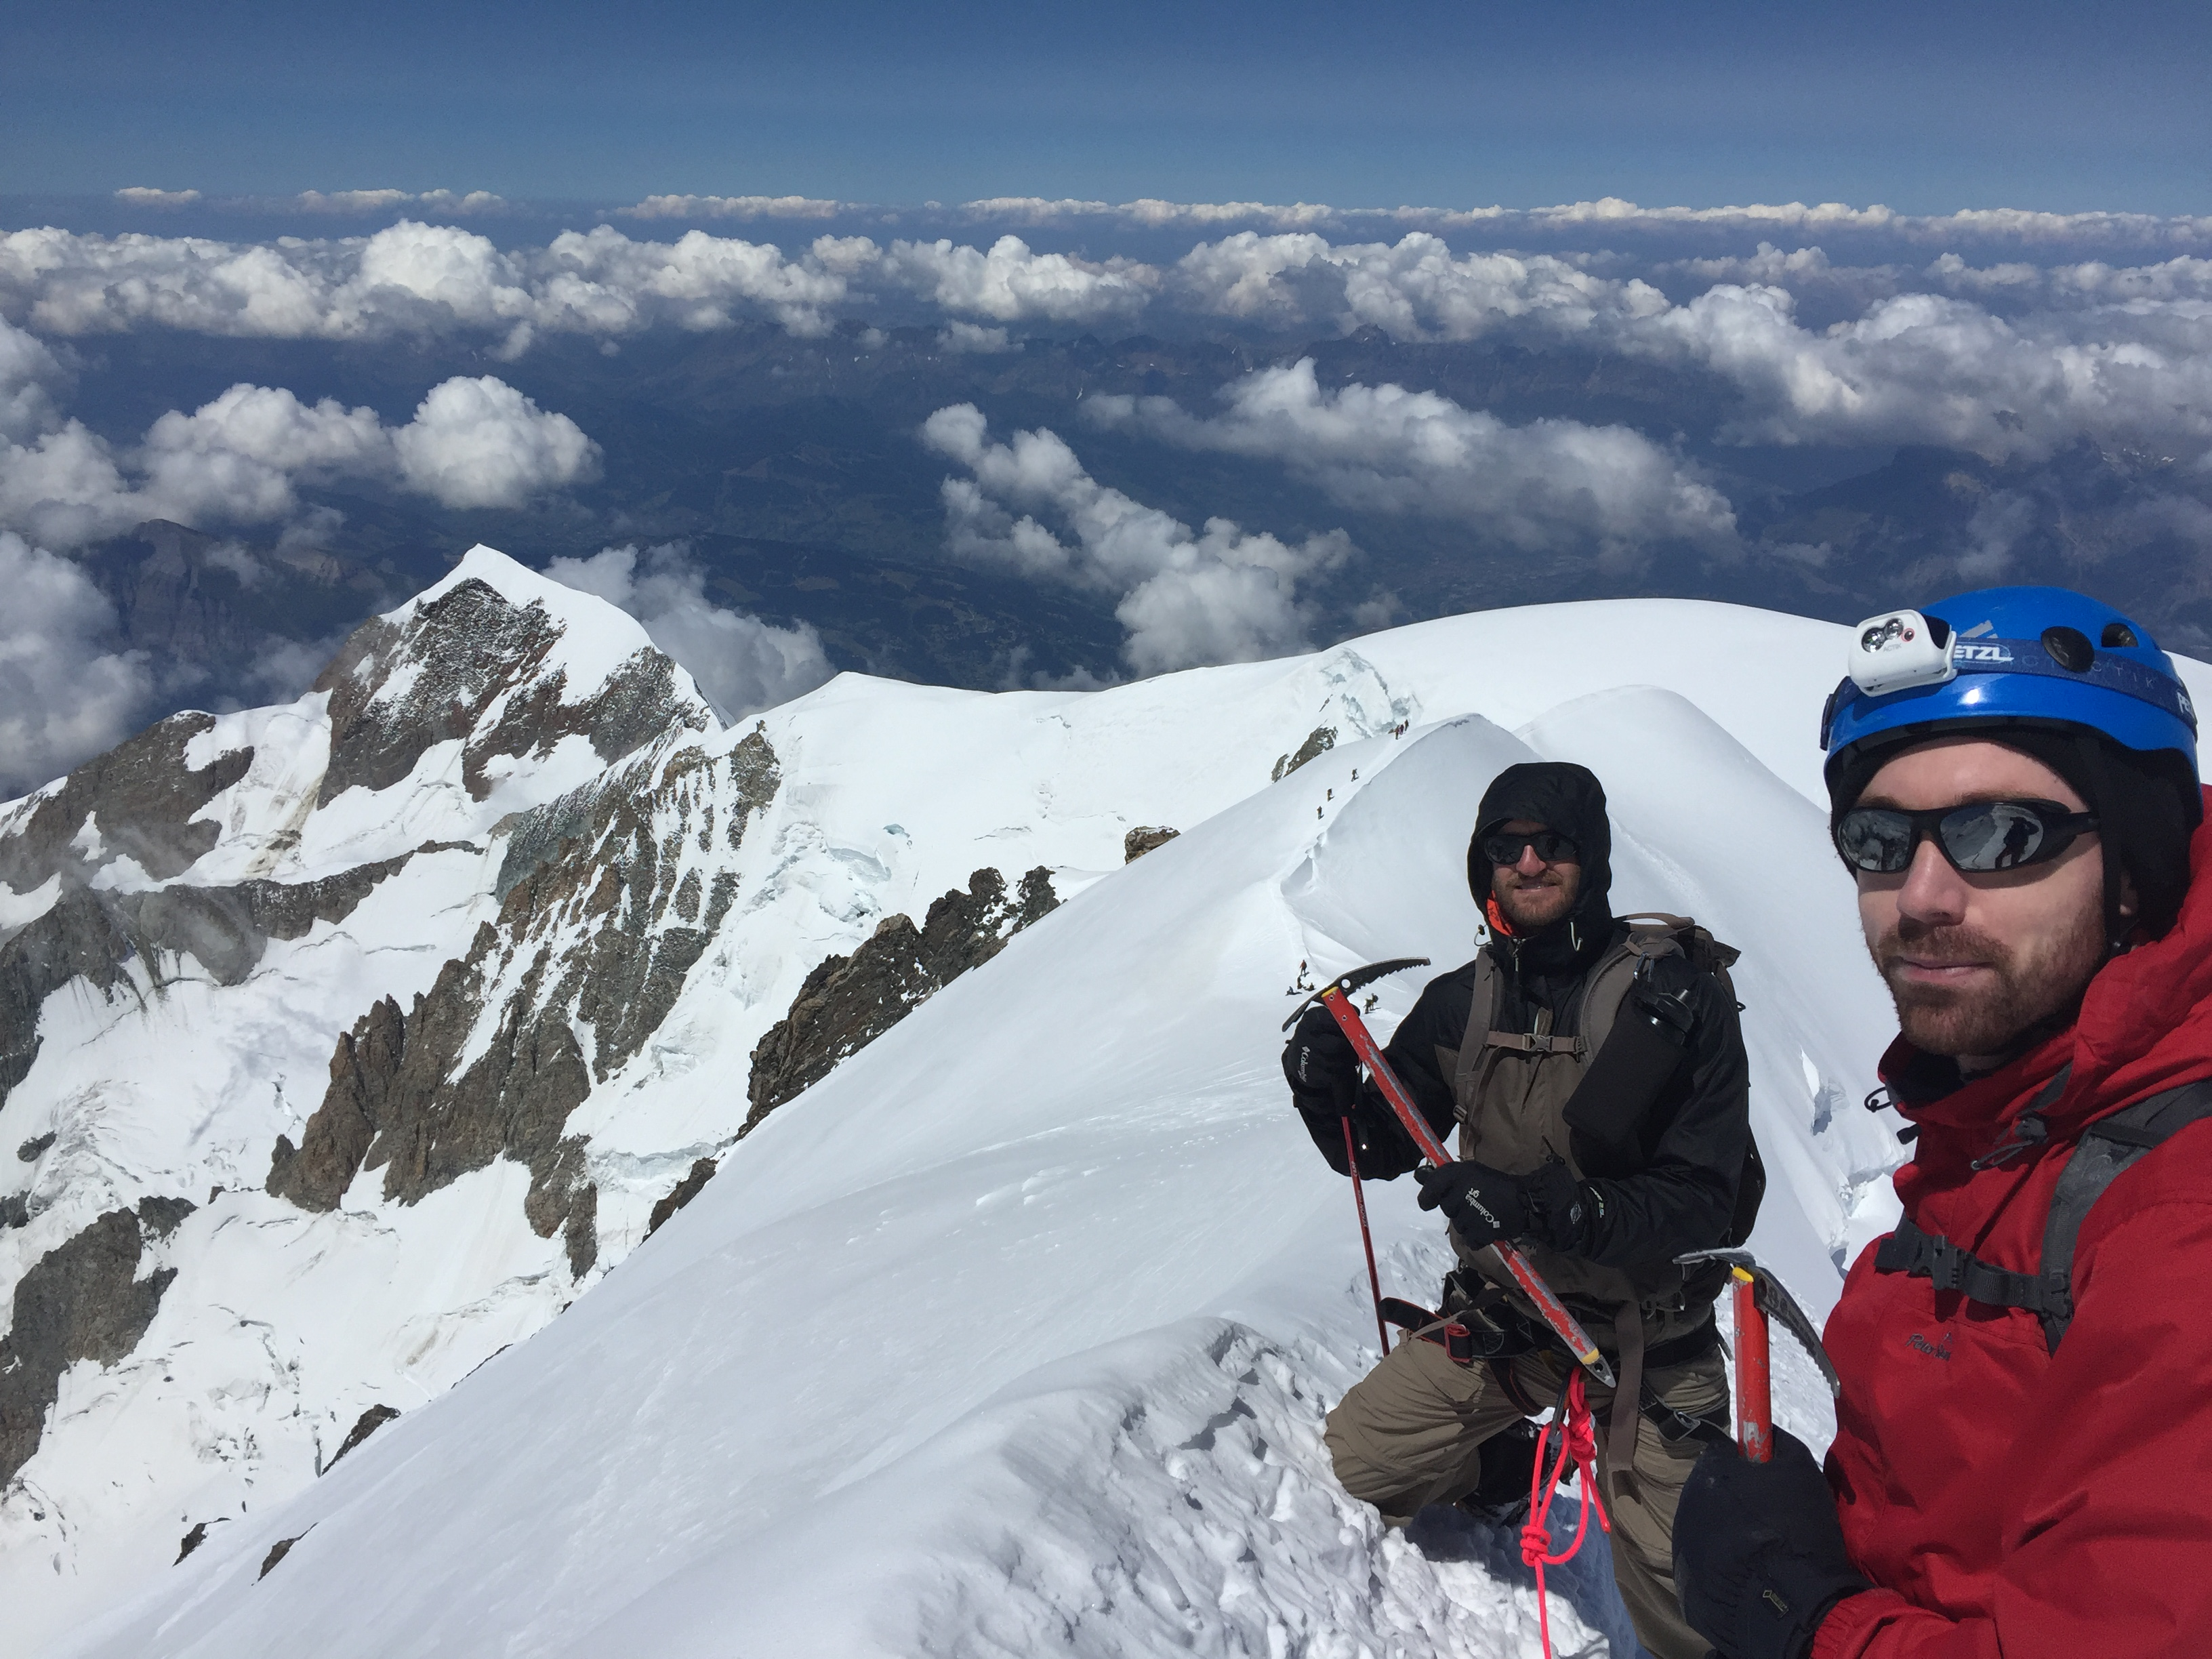 Bosses Ridge Mont Blanc Ross Hewitt Guiding